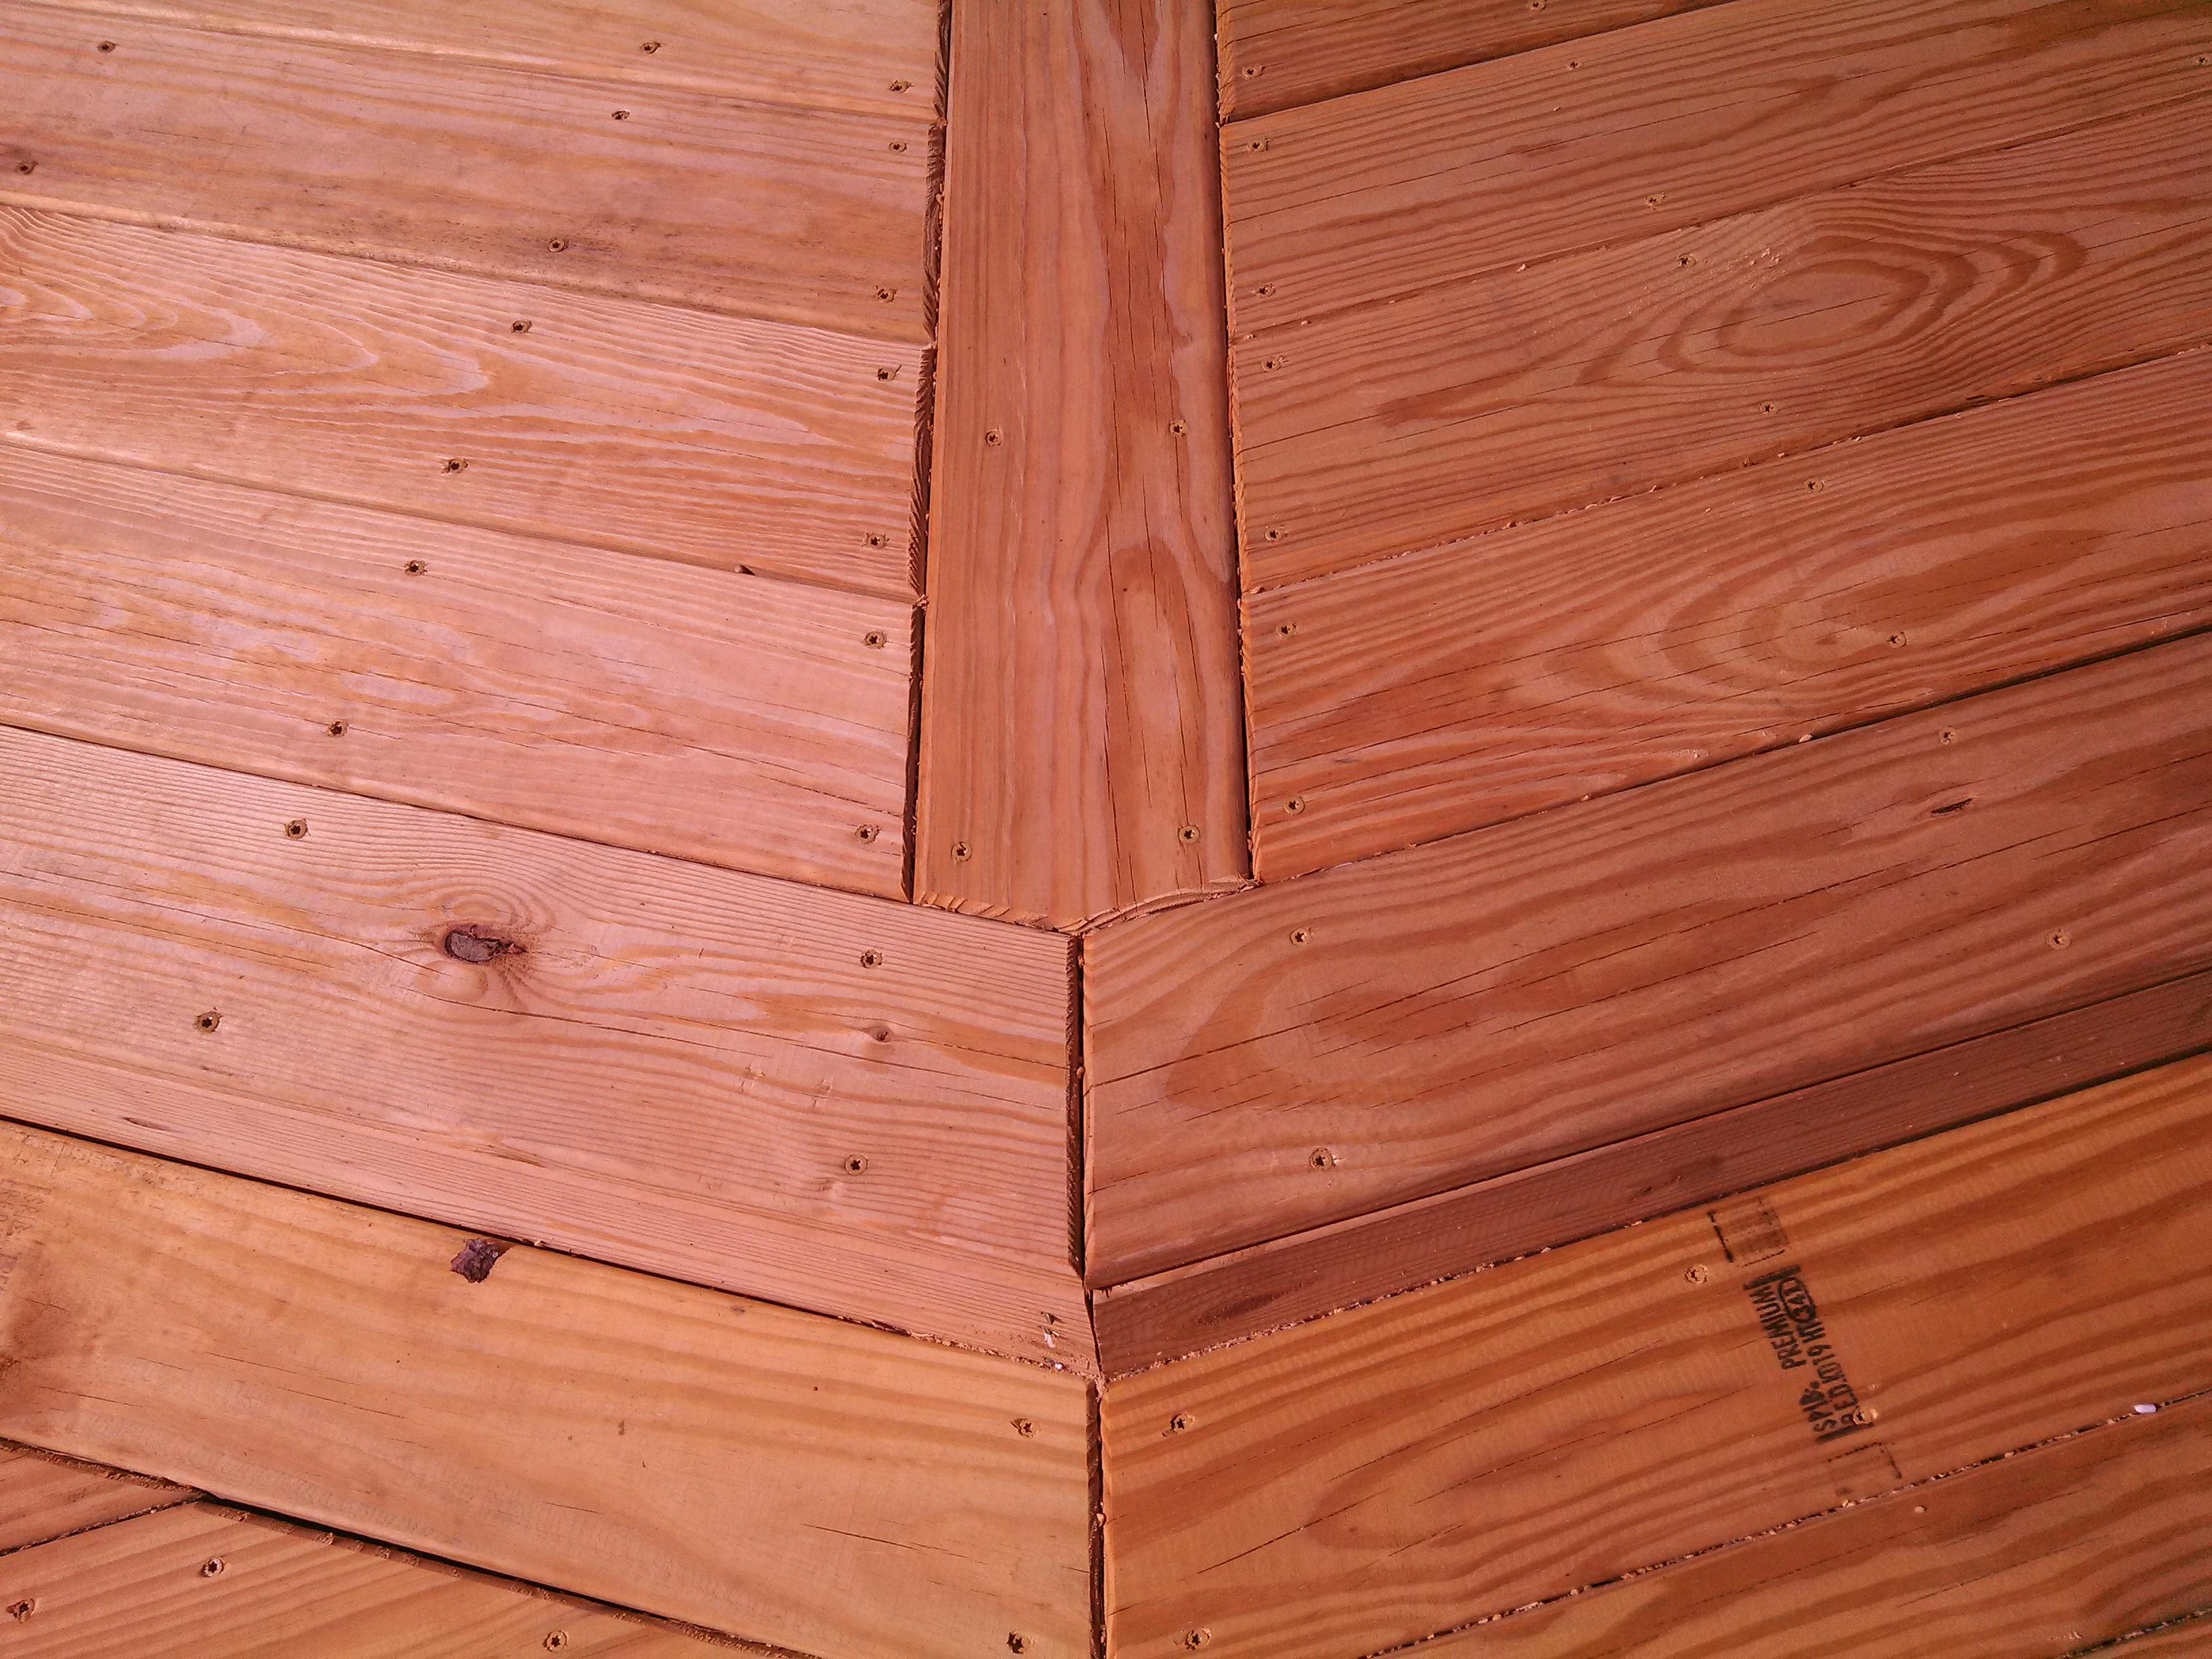 close up view of the decking